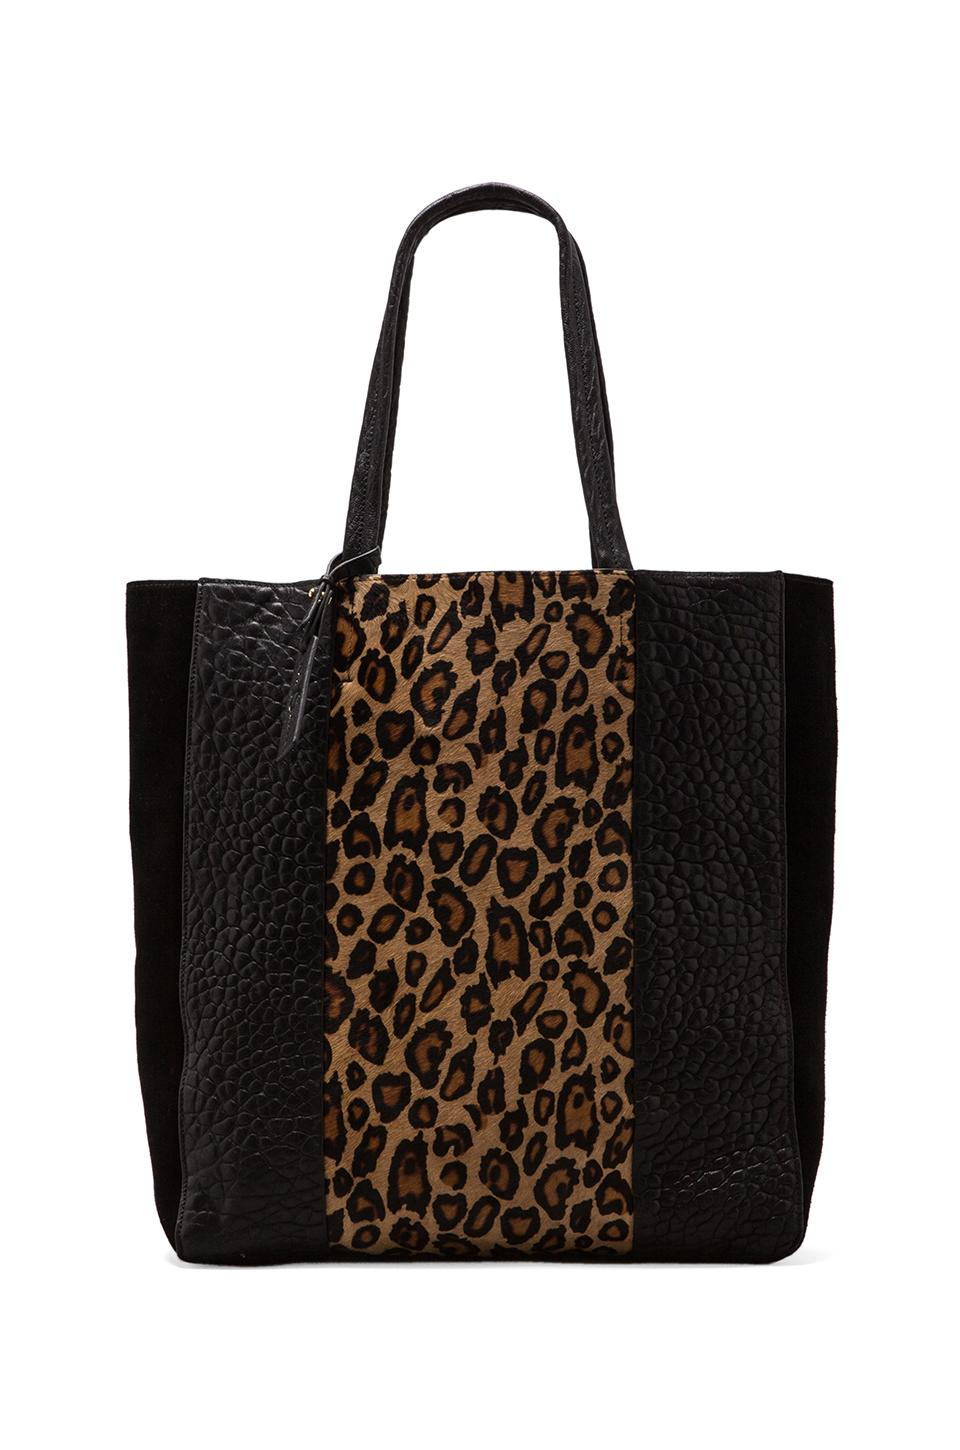 Yosi Samra Multi Panel Tote Bag in Black/Tan Leopard